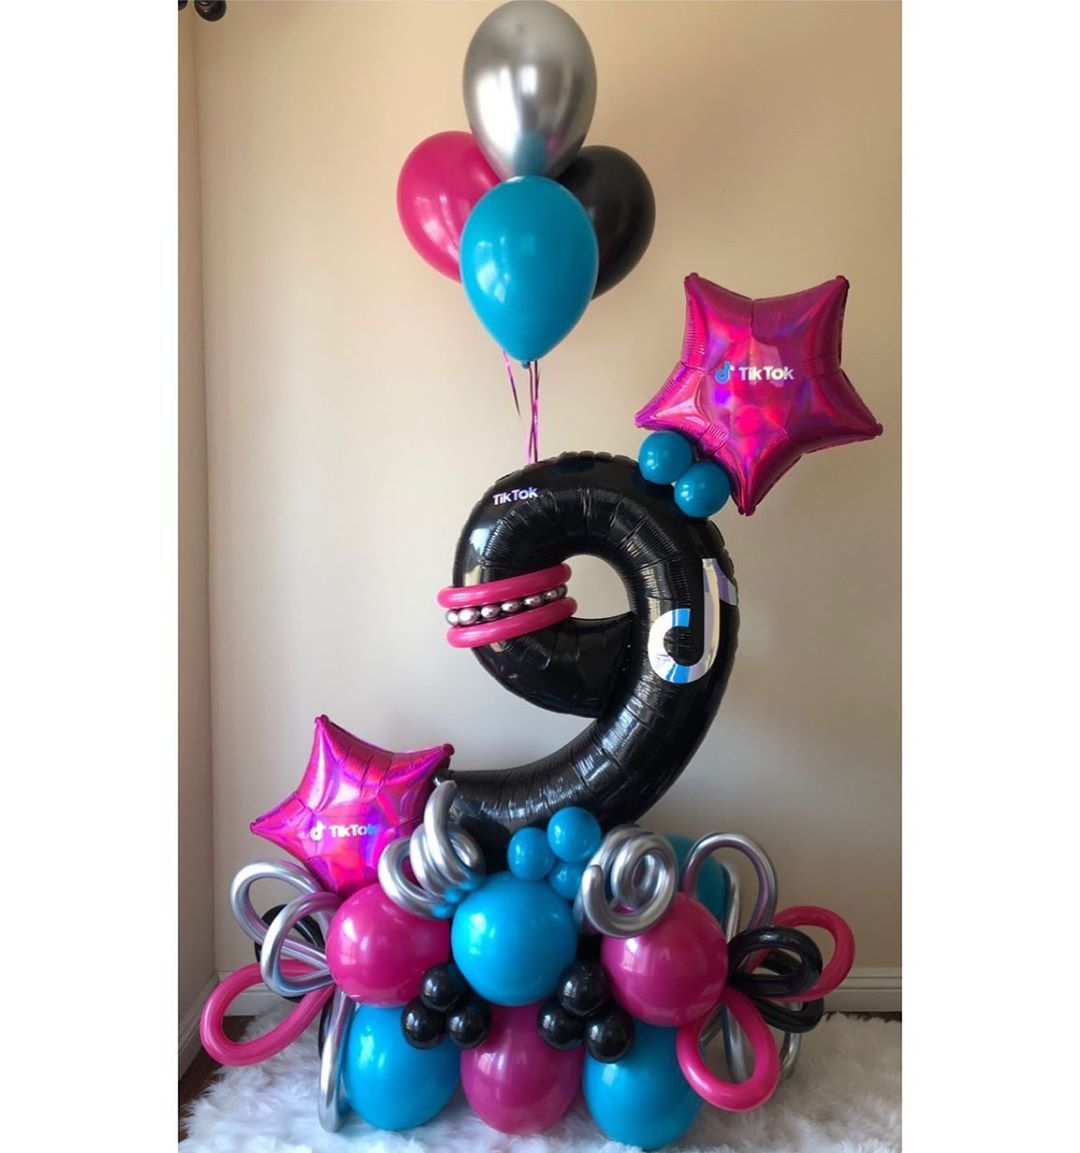 63 Likes 1 Comments Balloons By Samantha Balloonsbysamantha On Instagram Ti Balloon Decorations Party Birthday Party Balloon 12th Birthday Party Ideas